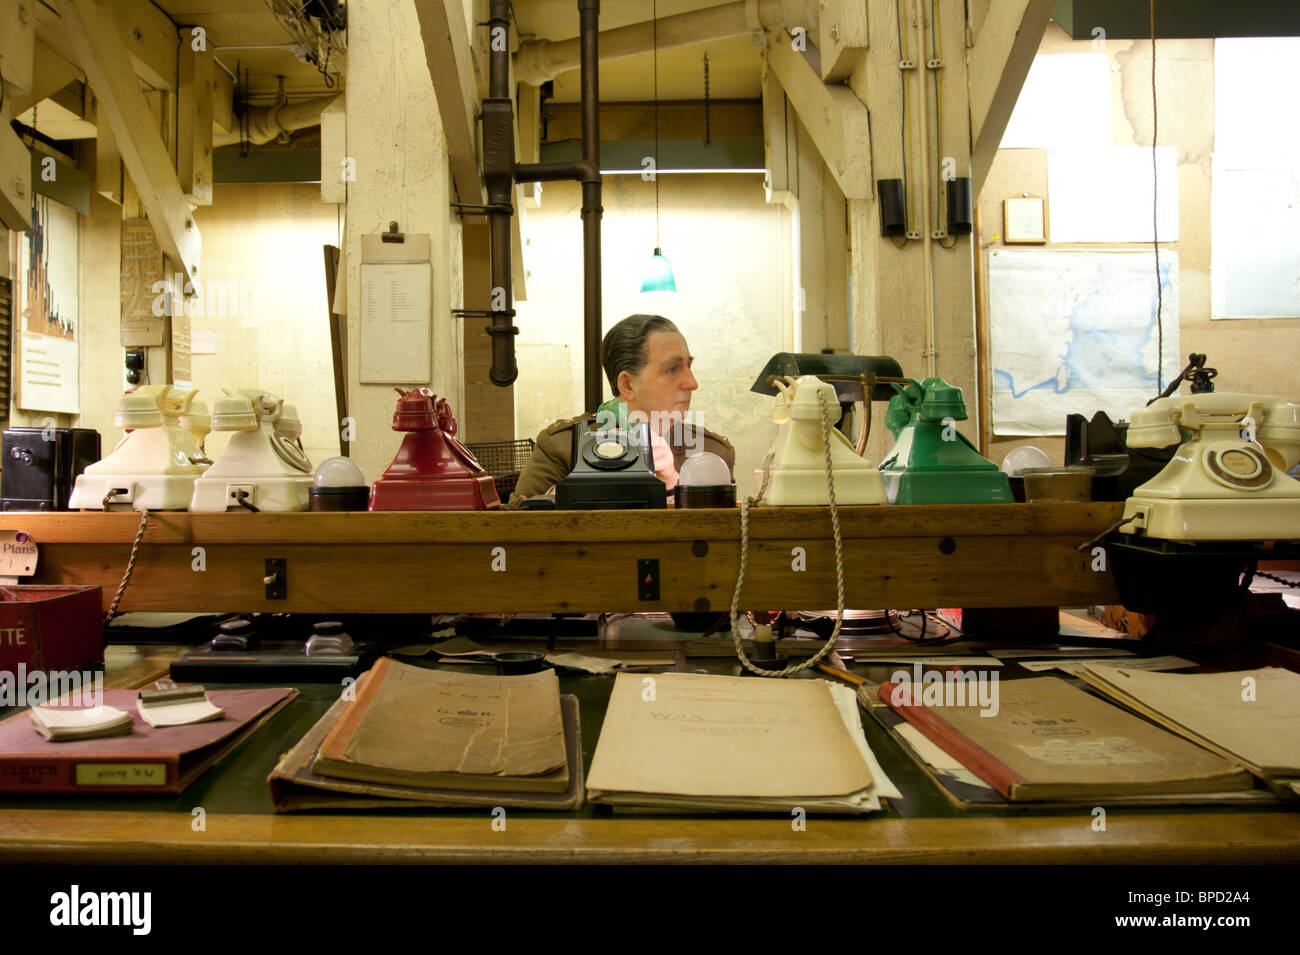 The map room churchill war rooms formally cabinet war rooms stock photo royalty free image - Churchill war cabinet rooms ...